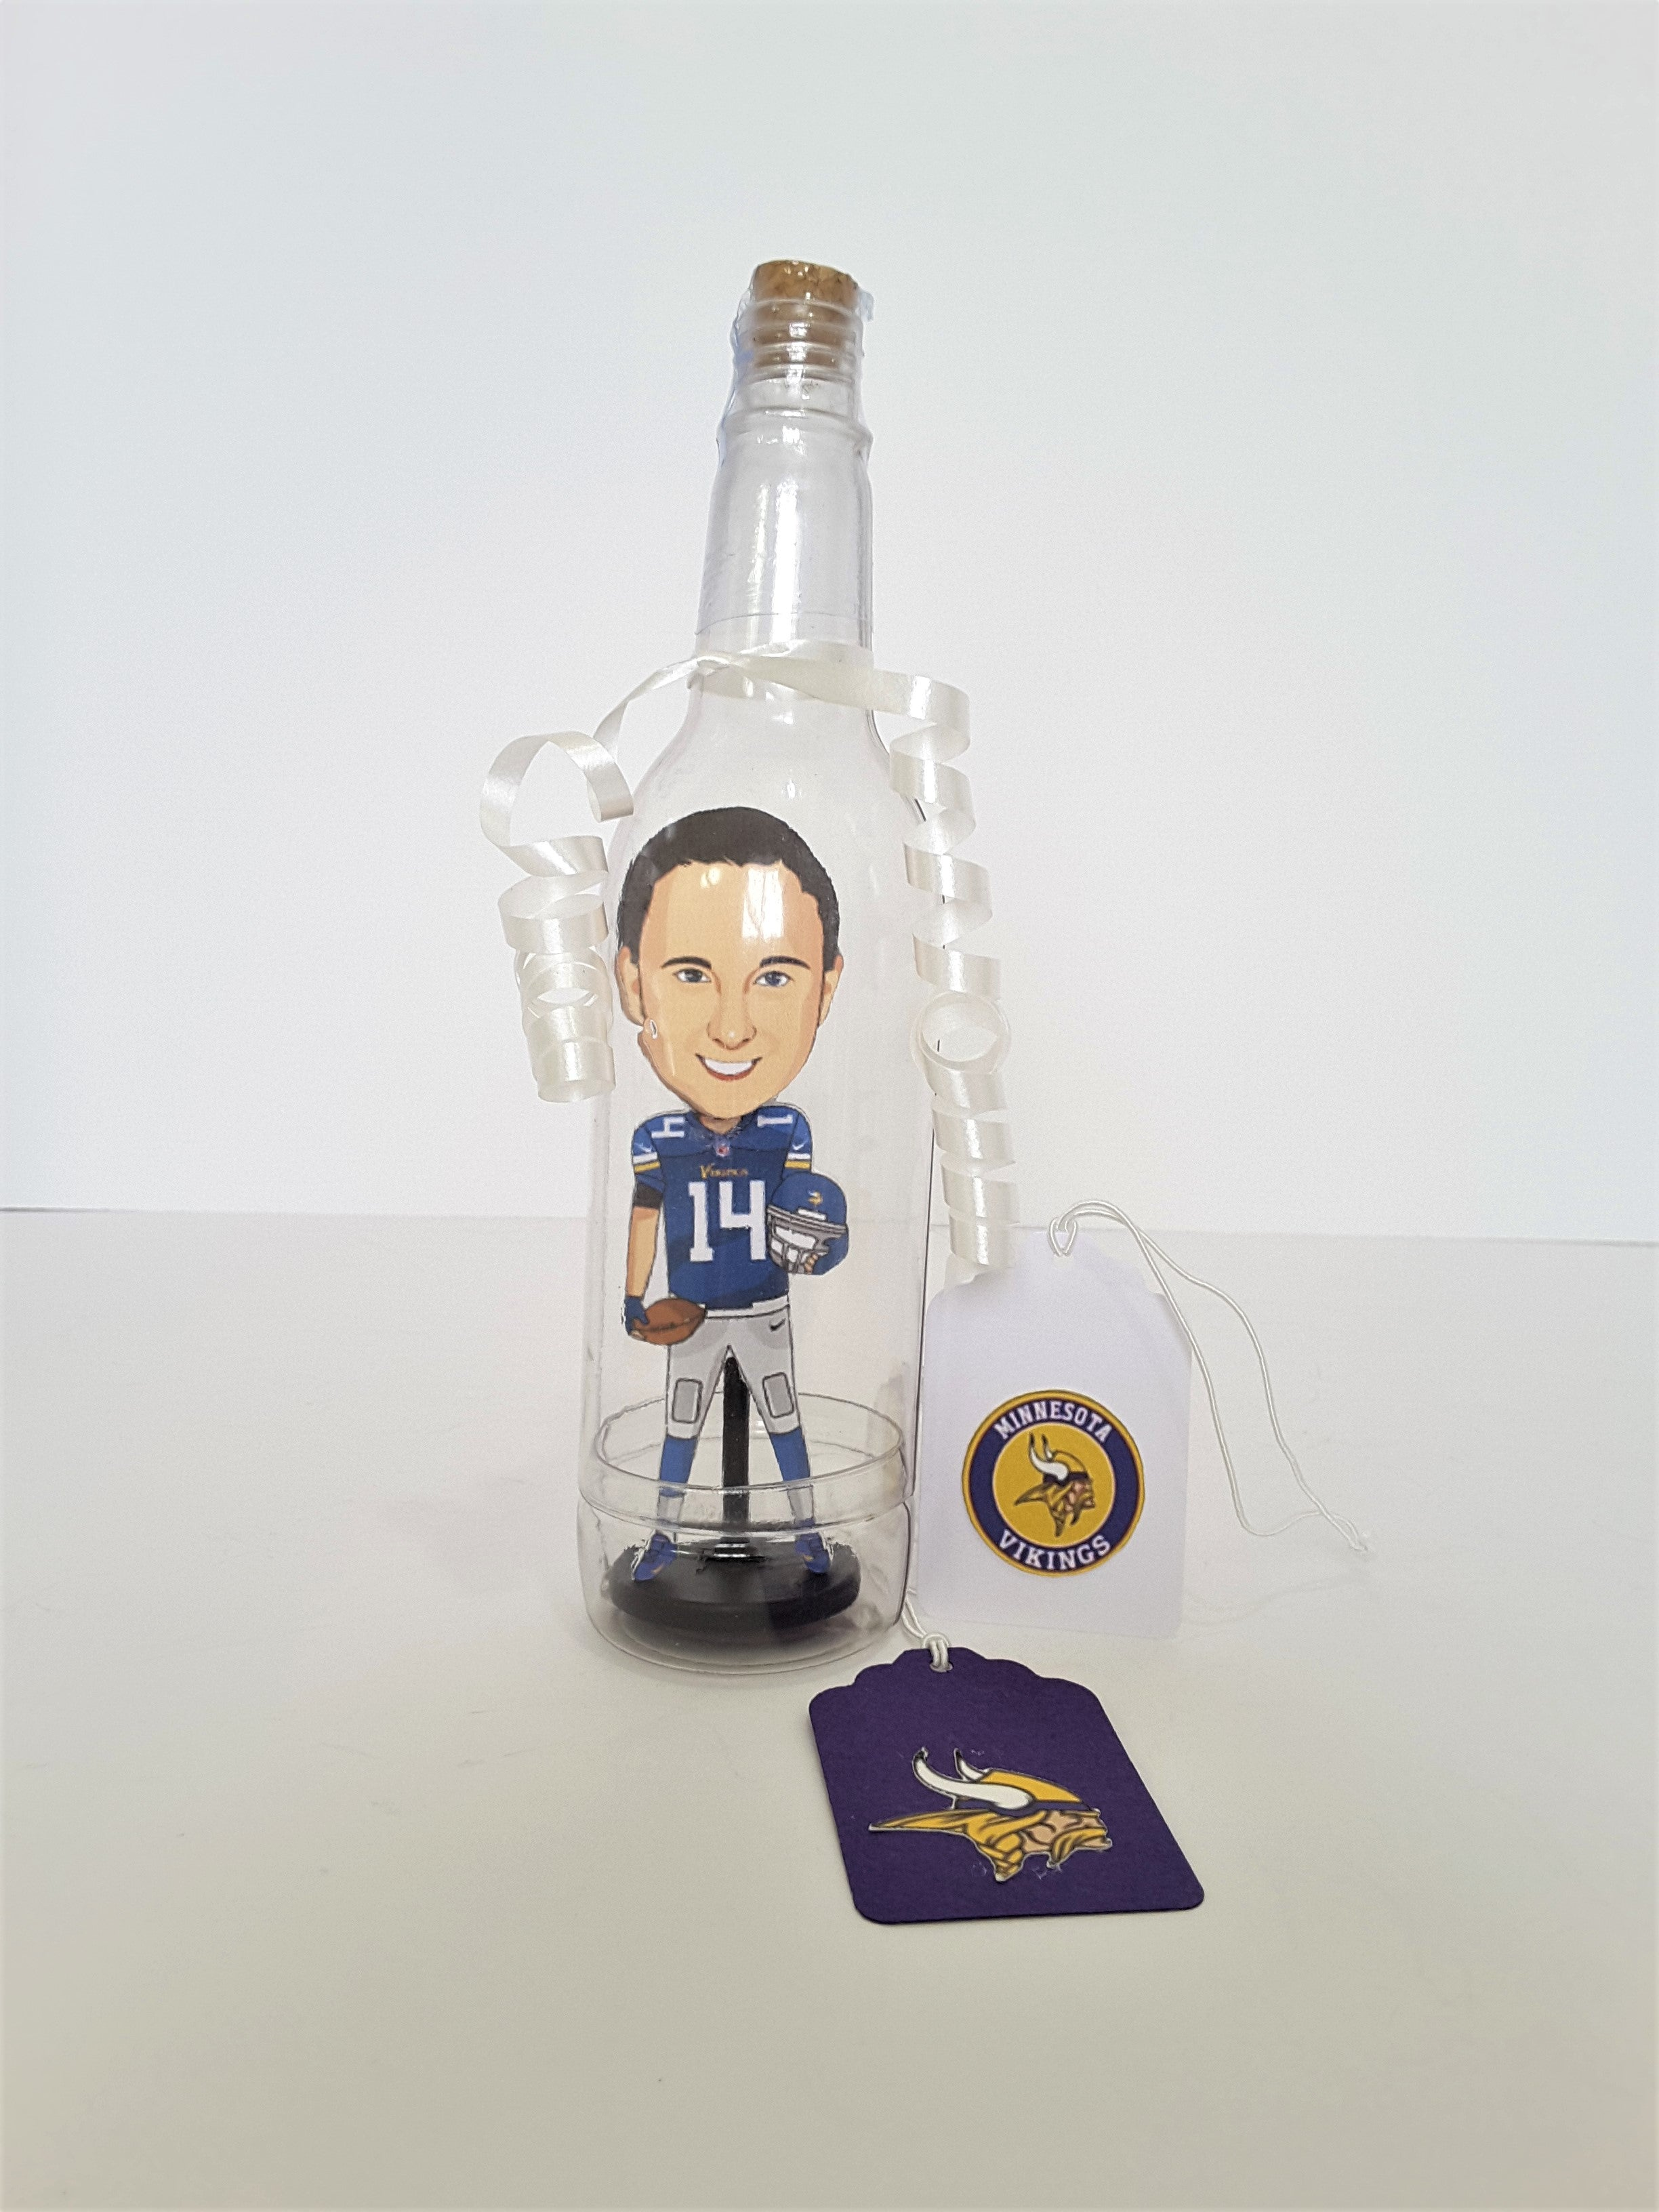 Your Caricature Message in a Bottle - Custom 3D Card & Rendering - TheLastWordBish.com